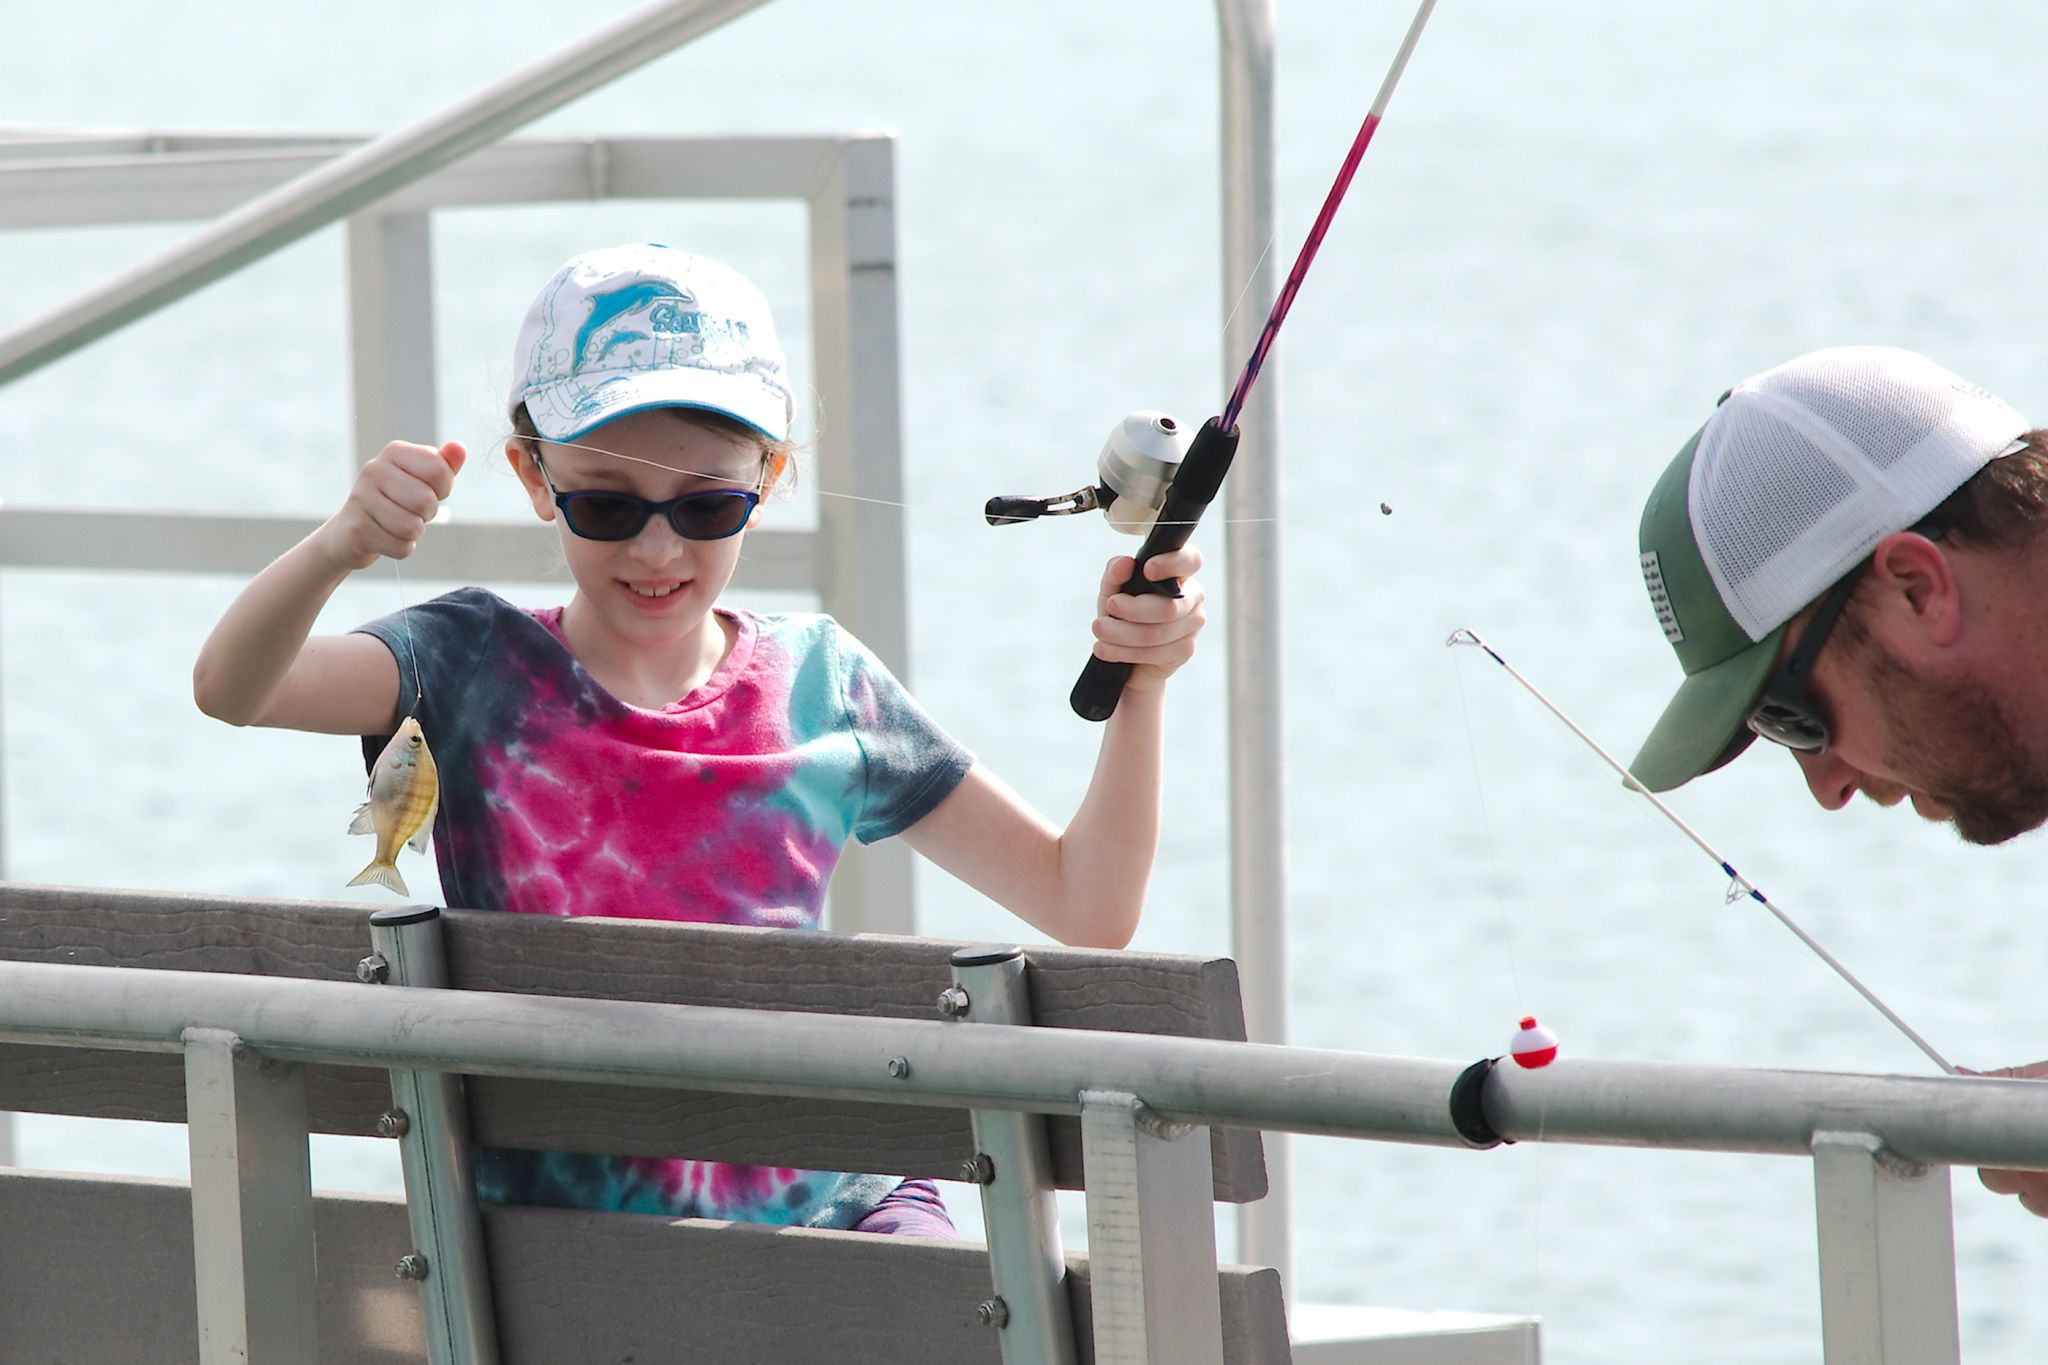 Texas Parks and Wildlife Department makes fishing easy and fun